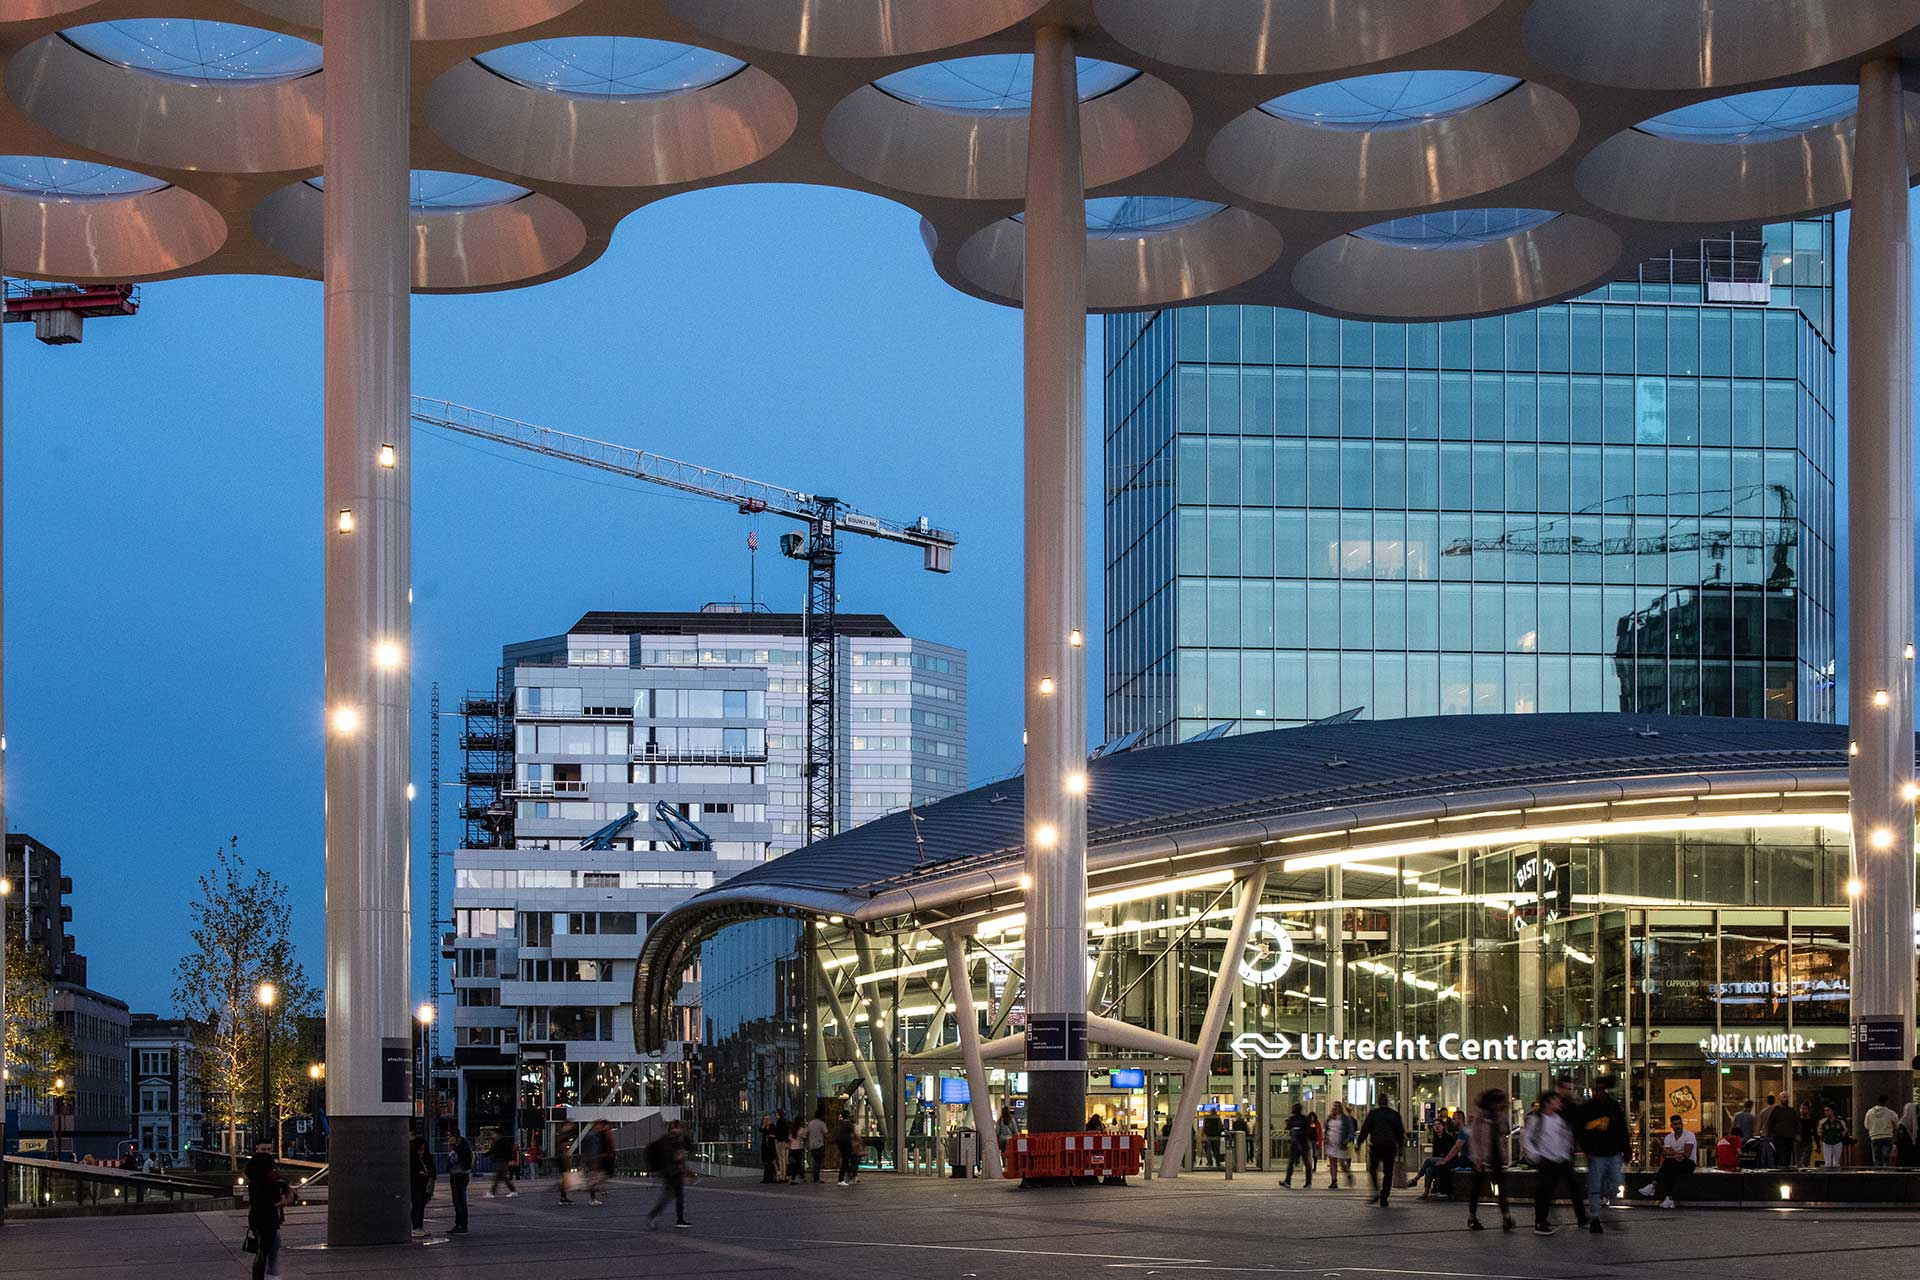 Sustainable lighting solution encourages commuters to spend more time outside Utrecht Central Station, boosting local business